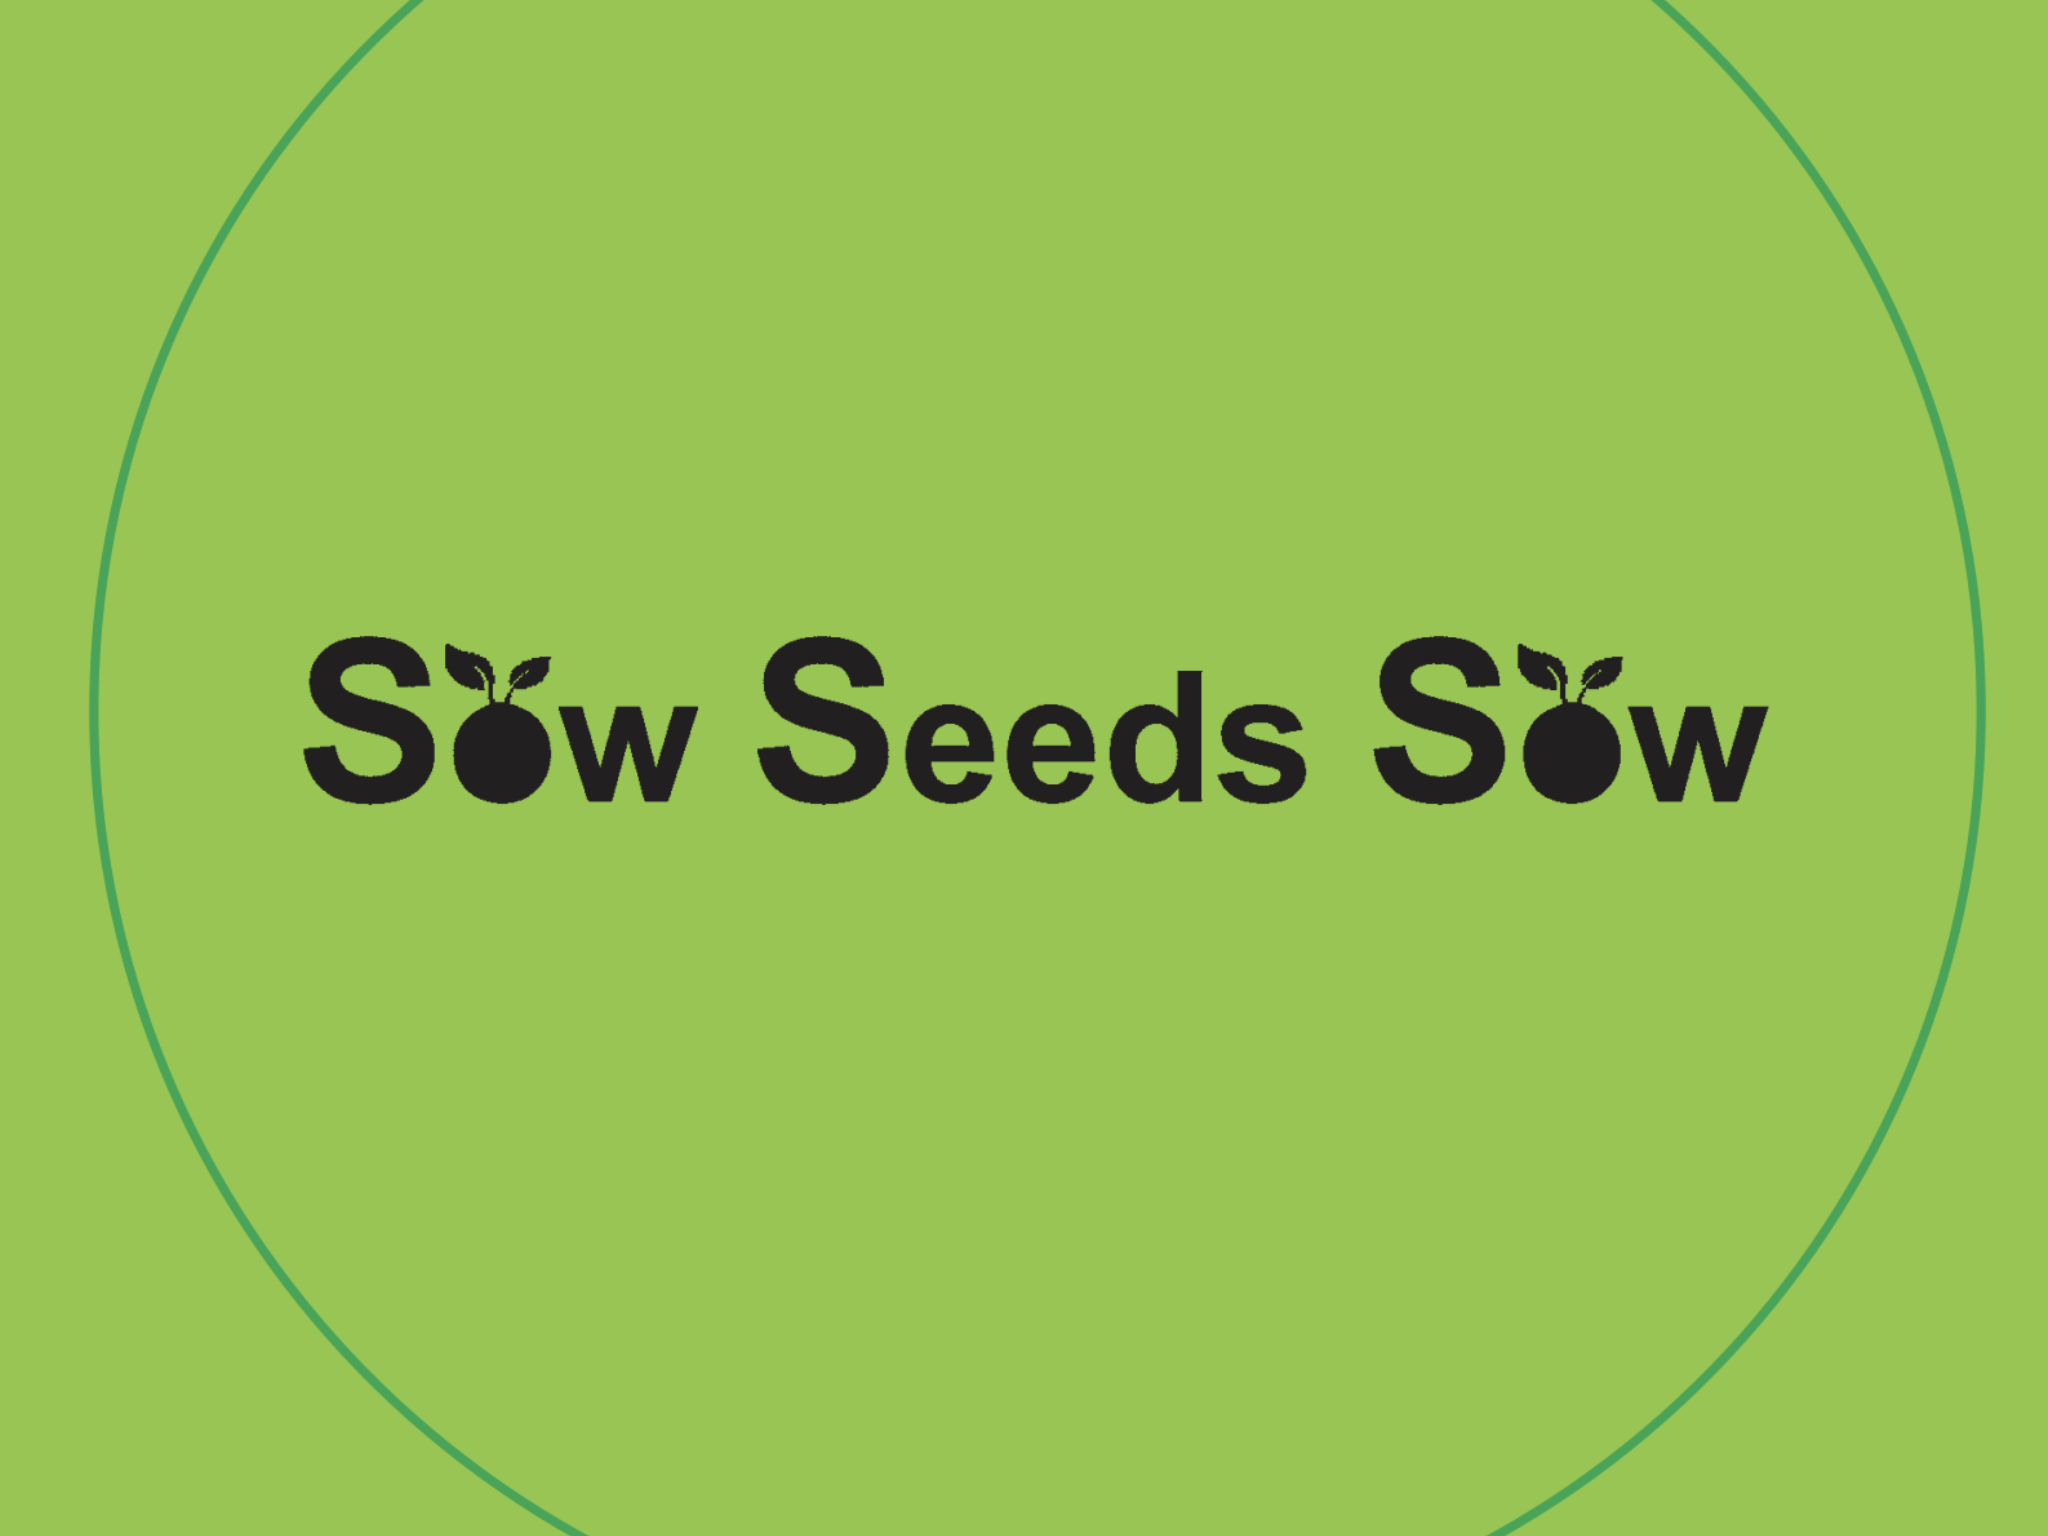 Sow Seeds Sow Limited